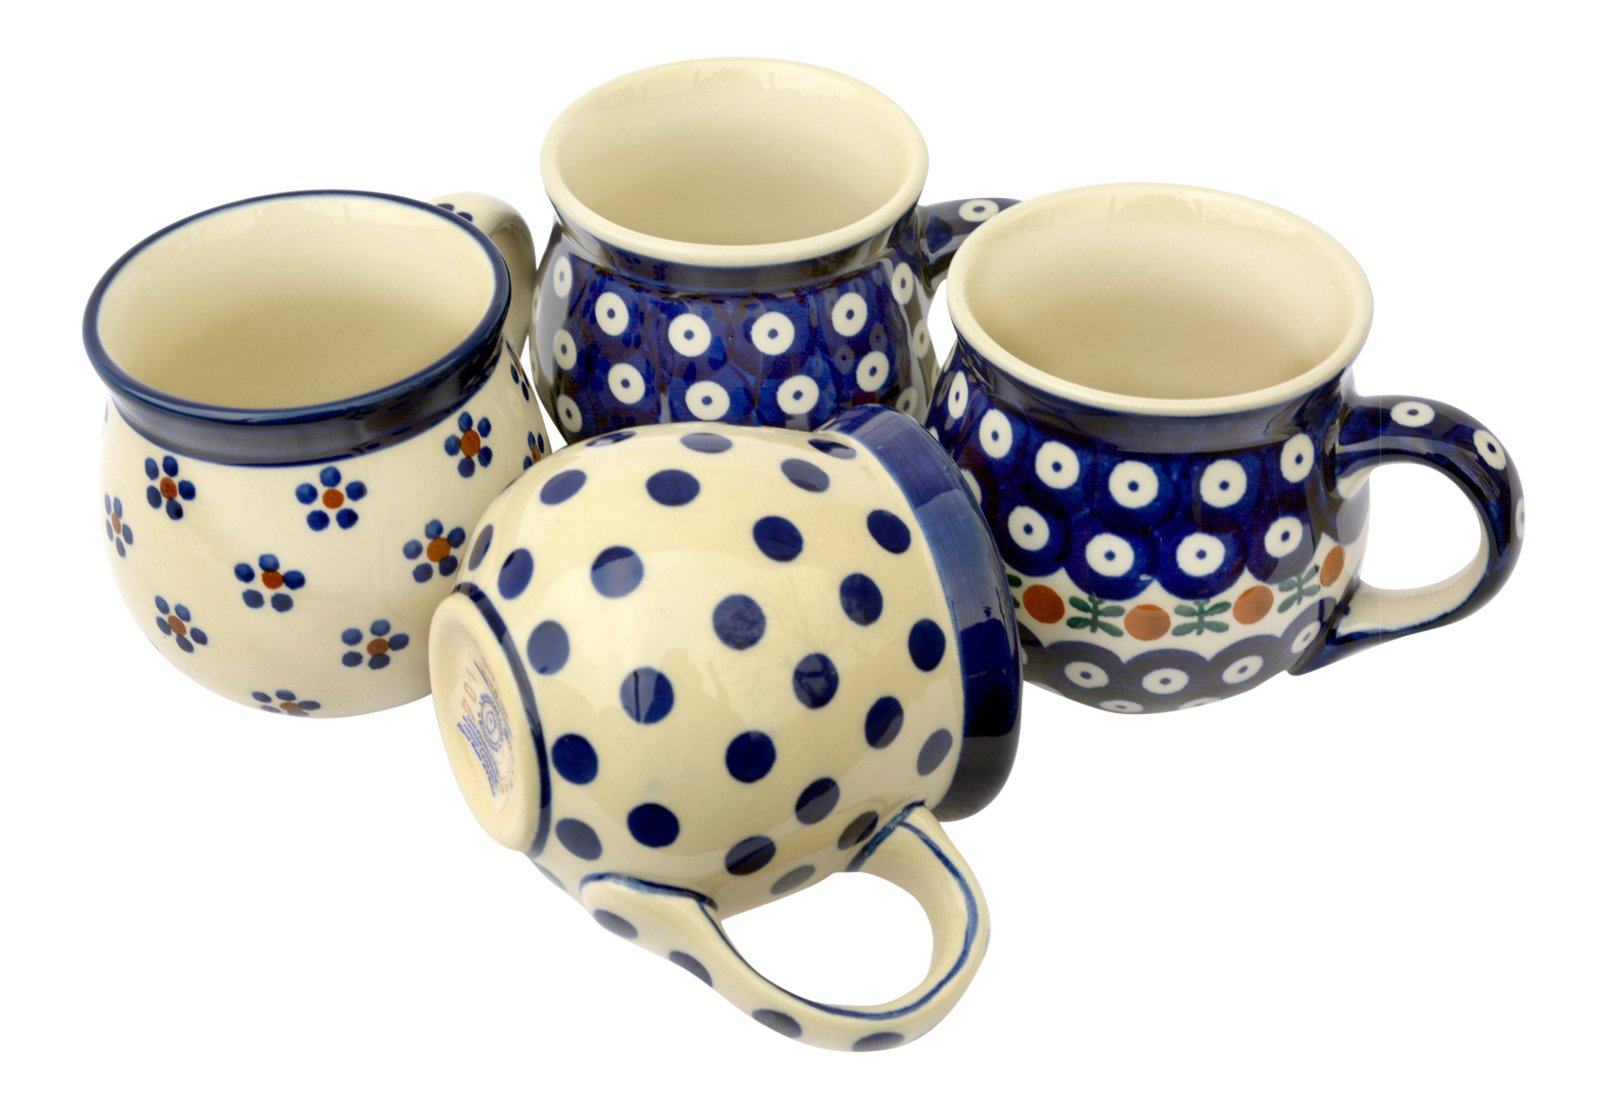 Bunzlauer Keramik Manufaktura Hand-Decorated Polish Pottery Manu Faktura 70 A 090, 61X, 64X, 70 – Set of 4 Bauble Mug Quartet, 9.5 cm, cobalt blue, 4 Units